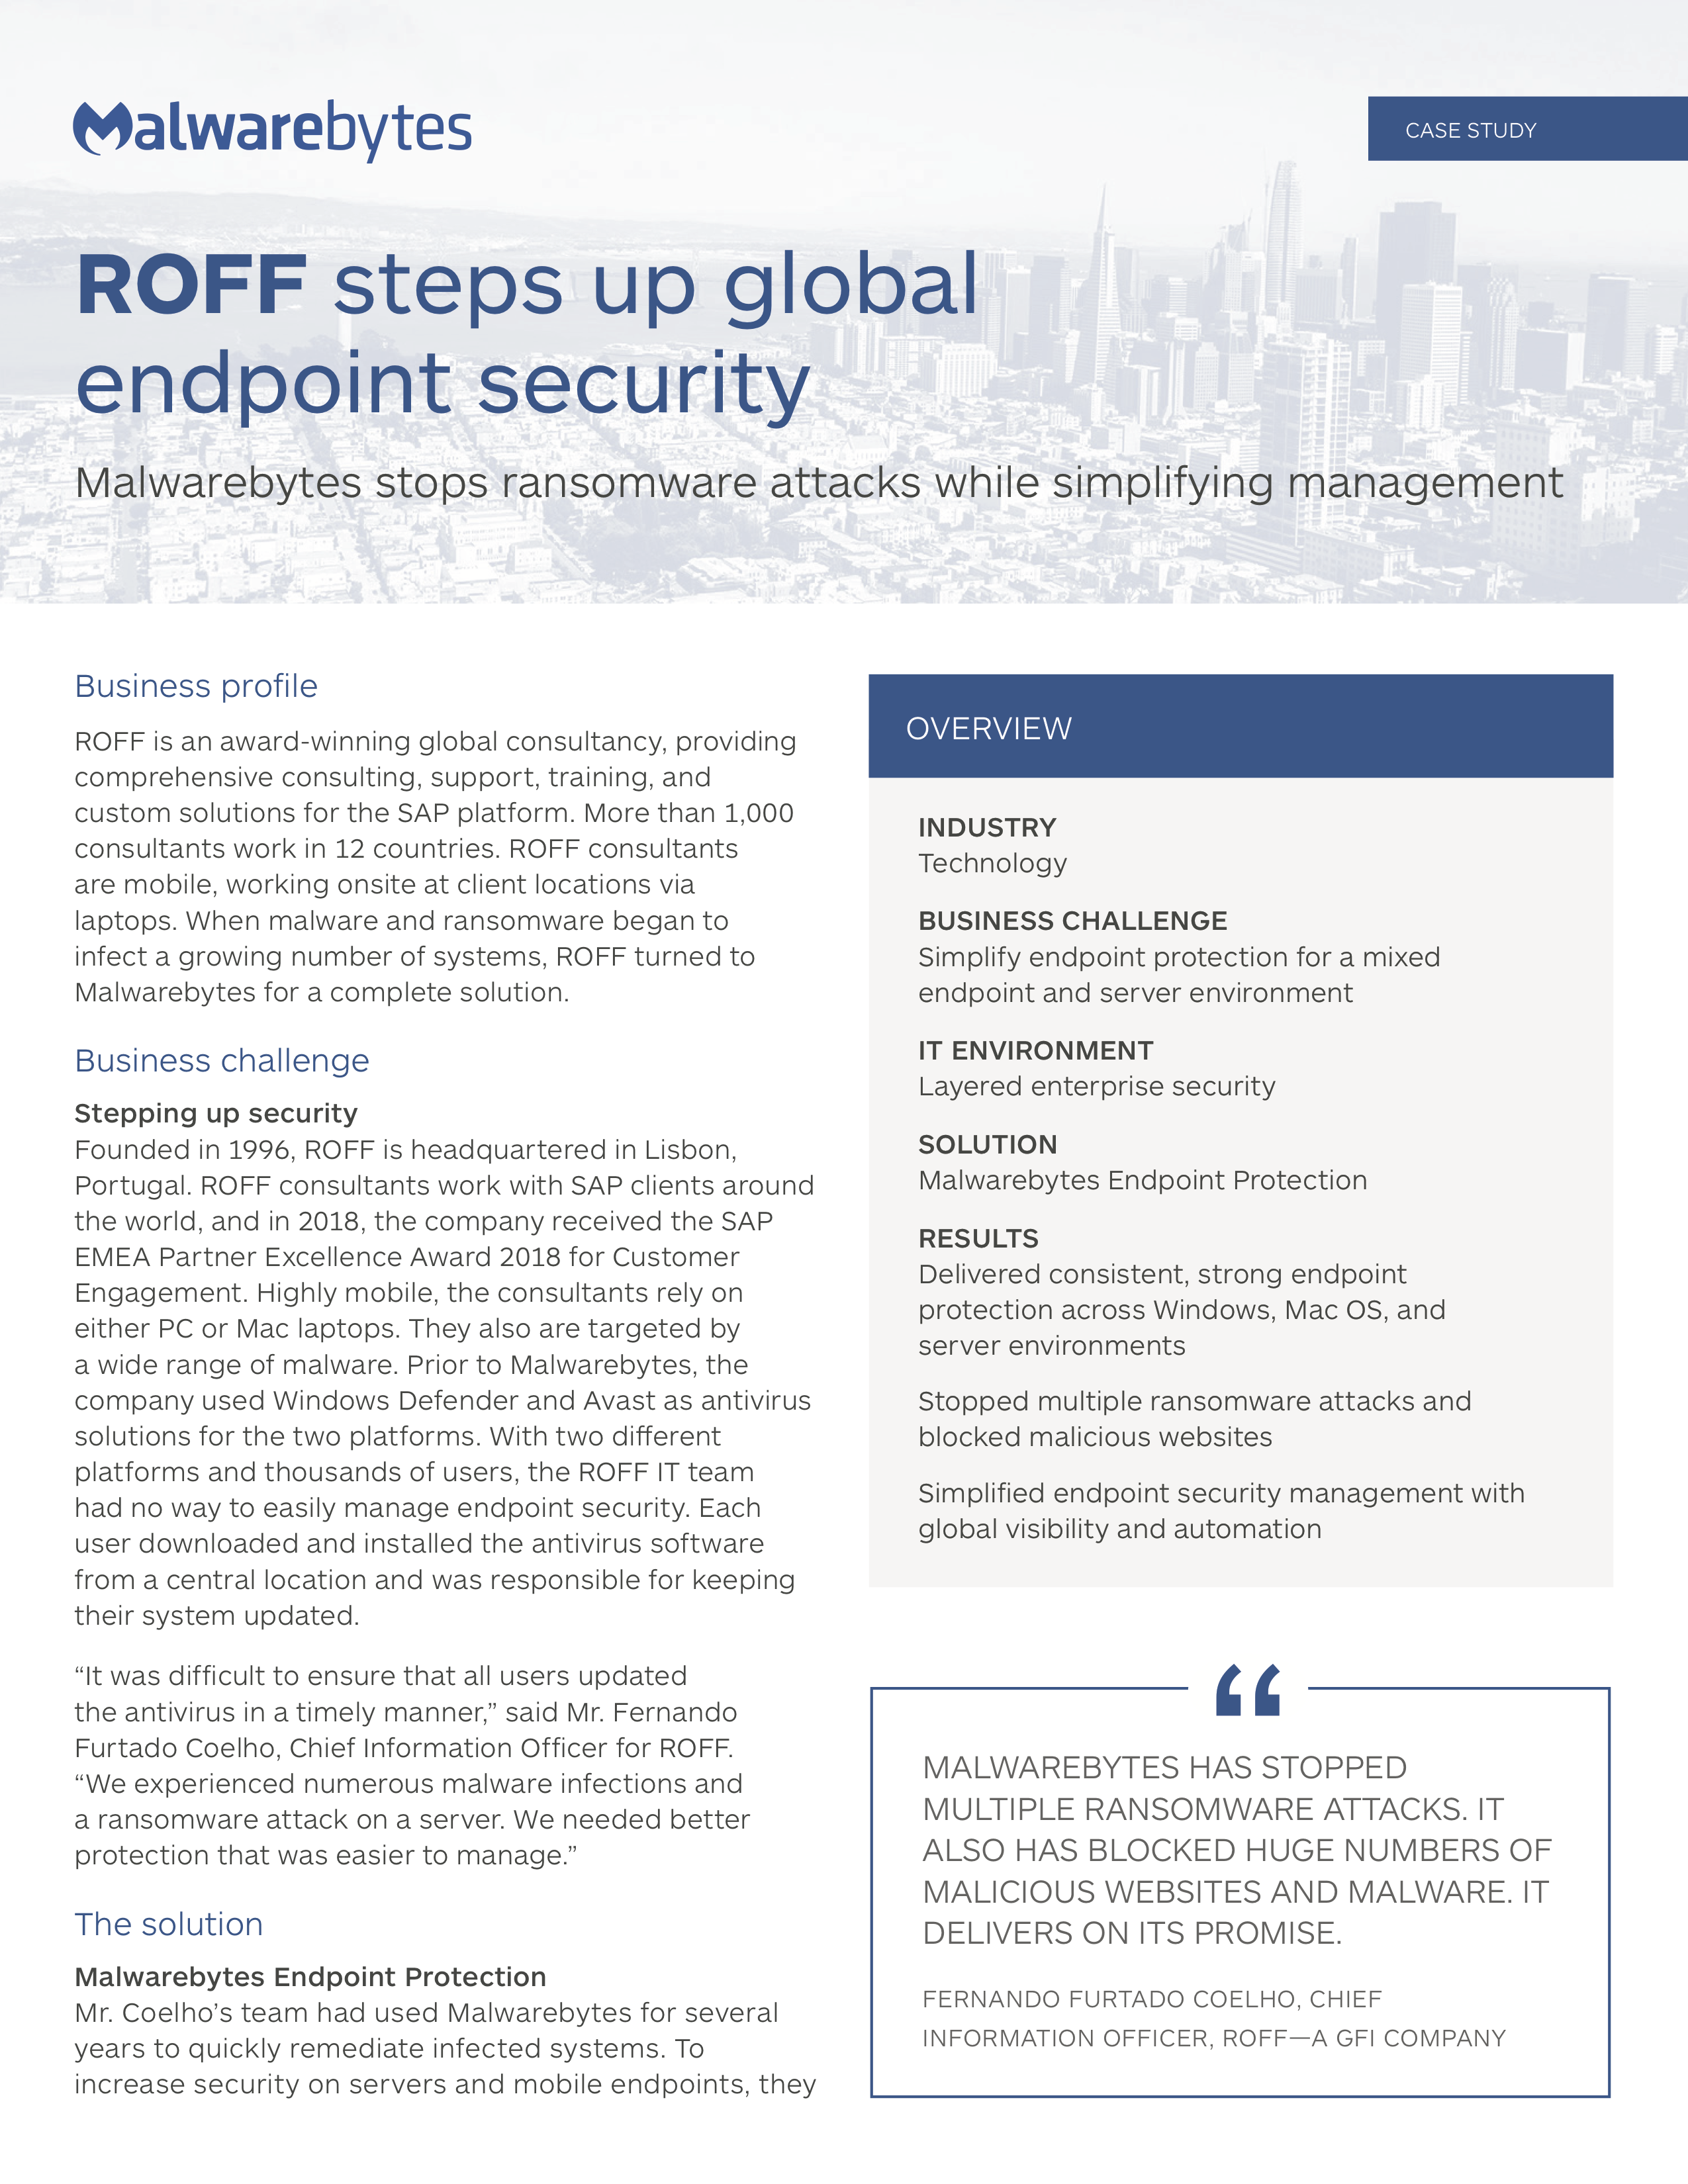 ROFF steps up global endpoint security